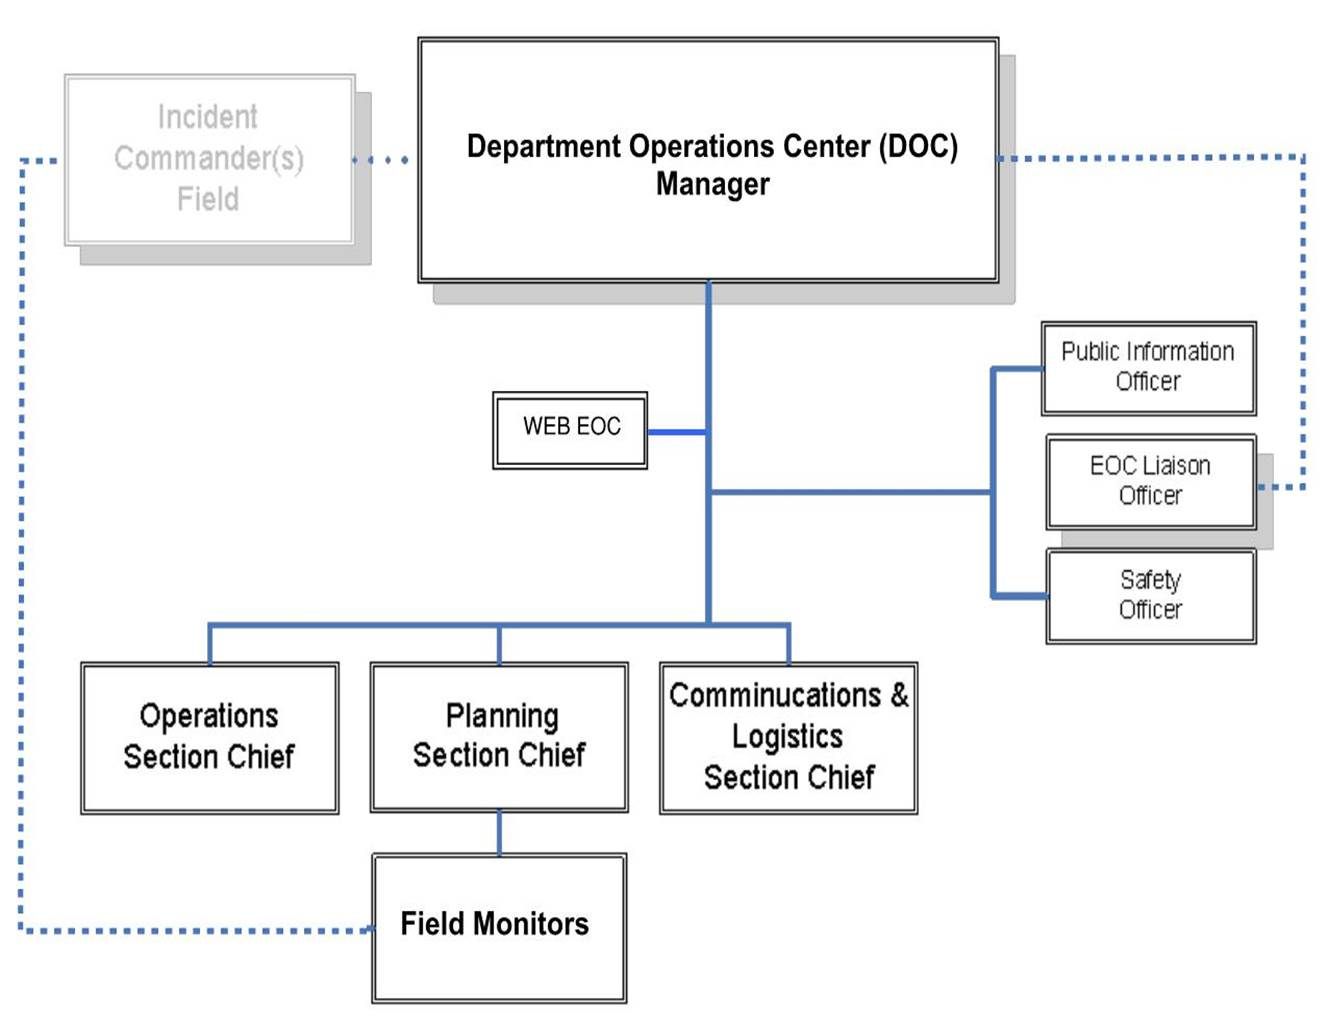 The stormwater Department Operations Center organizational structure